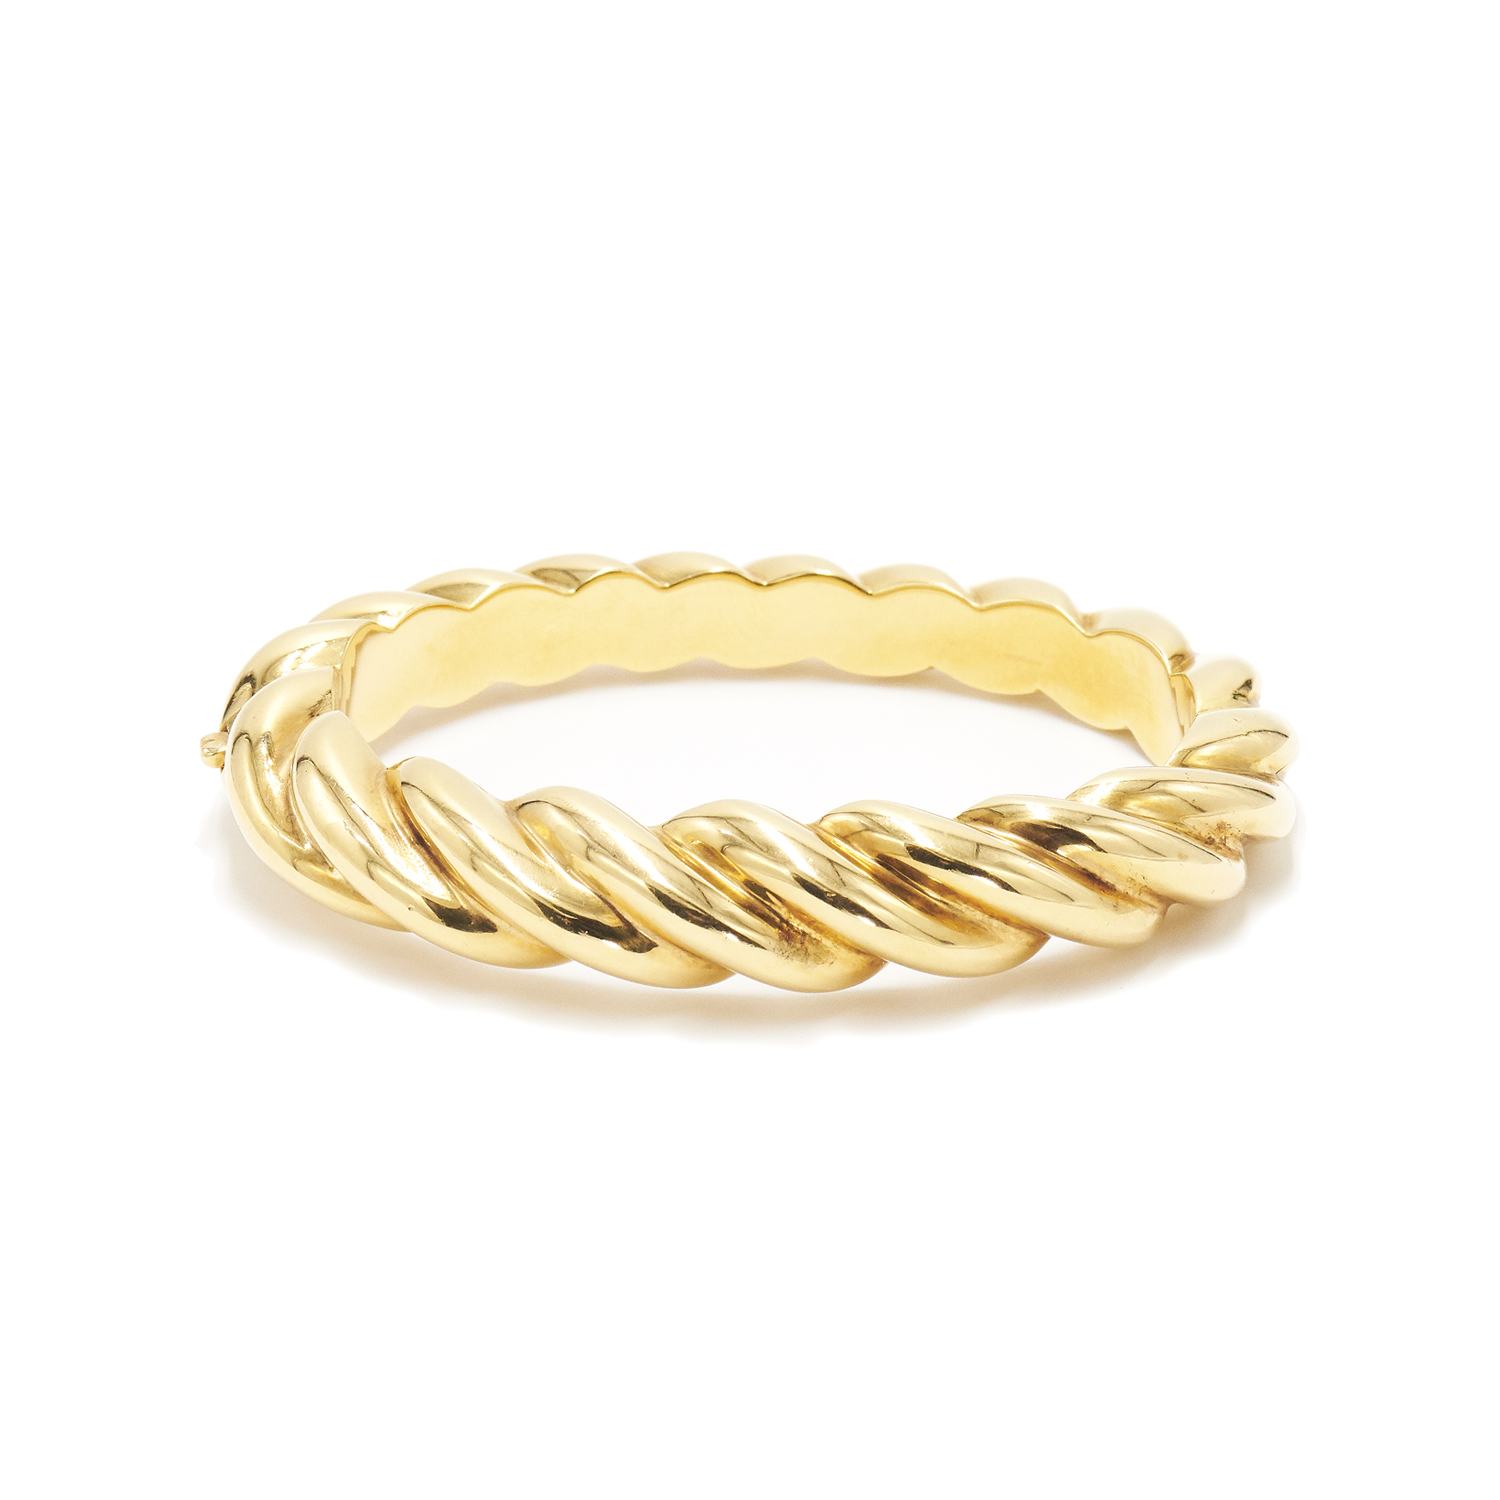 18K Yellow Gold Coil Bangle by Chaumet Style B-38637-FL-0-0